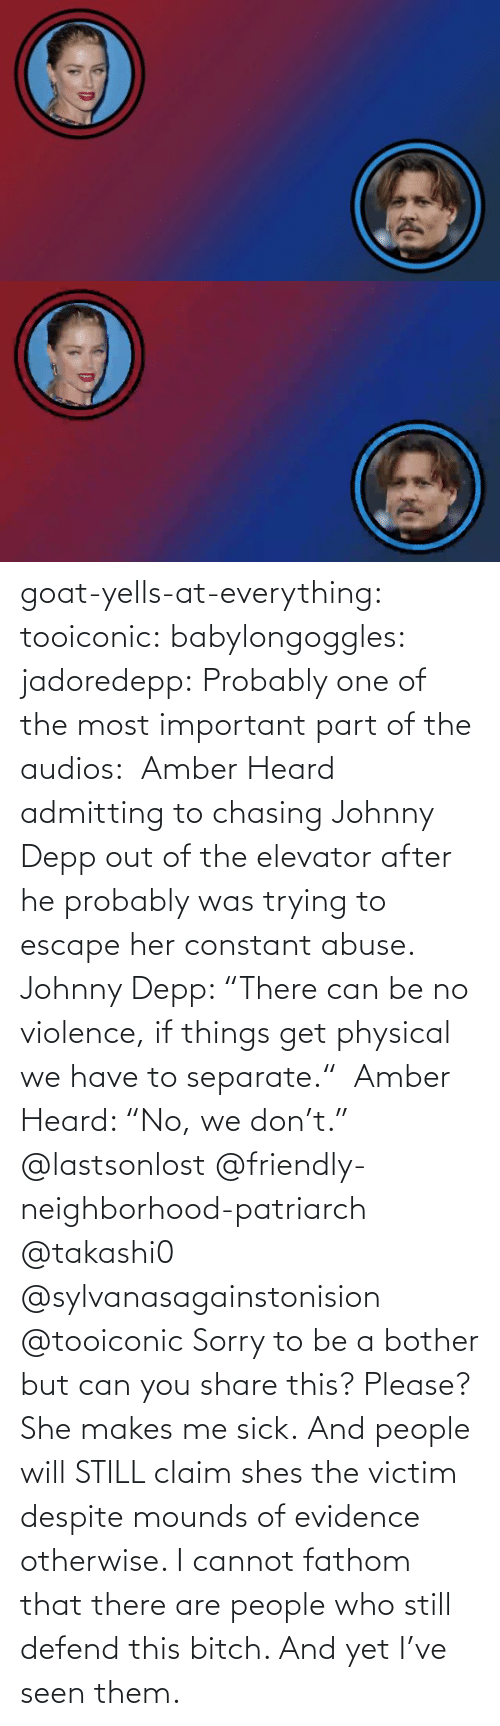 "Physical: goat-yells-at-everything:  tooiconic:  babylongoggles:  jadoredepp:  Probably one of the most important part of the audios:  Amber Heard admitting to chasing Johnny Depp out of the elevator after he probably was trying to escape her constant abuse.  Johnny Depp: ""There can be no violence, if things get physical we have to separate.""  Amber Heard: ""No, we don't.""  @lastsonlost @friendly-neighborhood-patriarch @takashi0 @sylvanasagainstonision @tooiconic Sorry to be a bother but can you share this? Please?   She makes me sick.   And people will STILL claim shes the victim despite mounds of evidence otherwise.    I cannot fathom that there are people who still defend this bitch. And yet I've seen them."